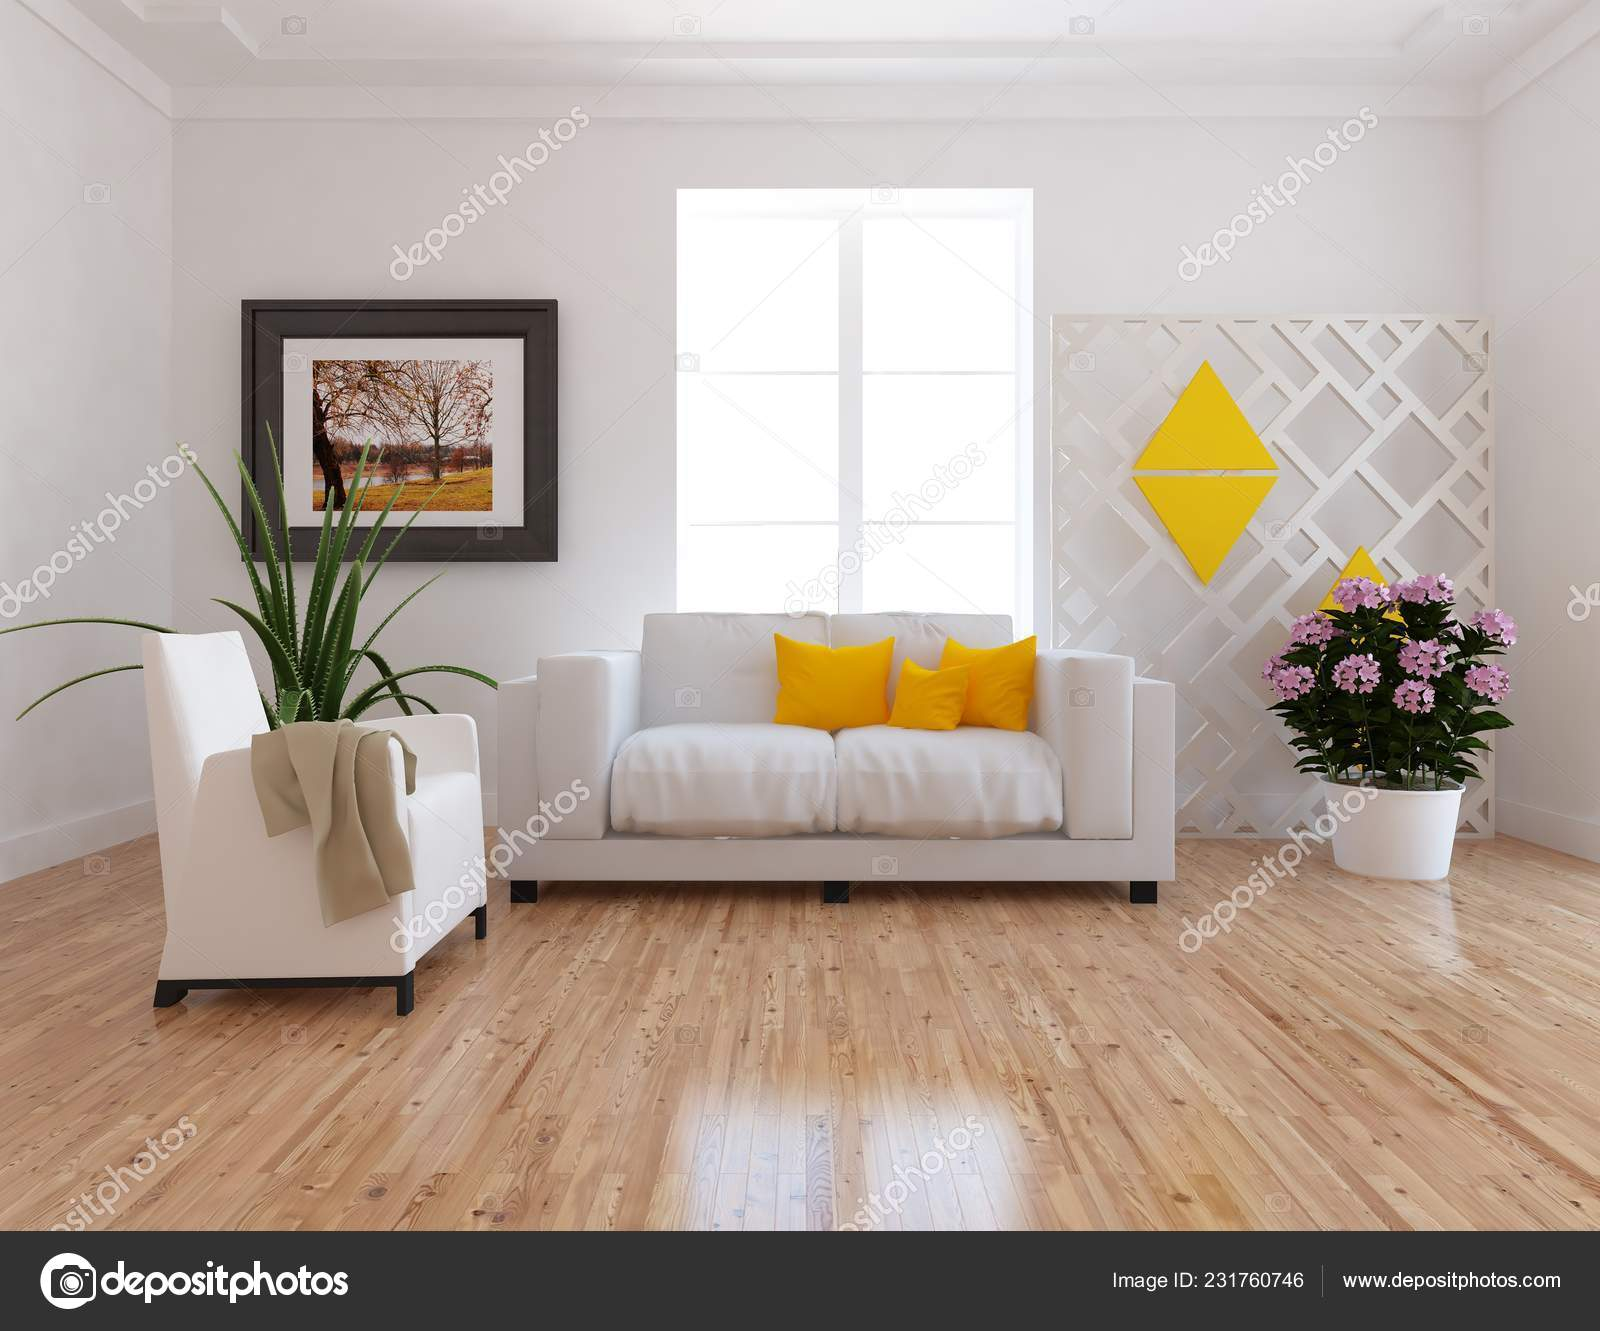 Idea of a white scandinavian living room interior with sofa, on the wooden  floor and decor on the large wall and white landscape in window. Home ...